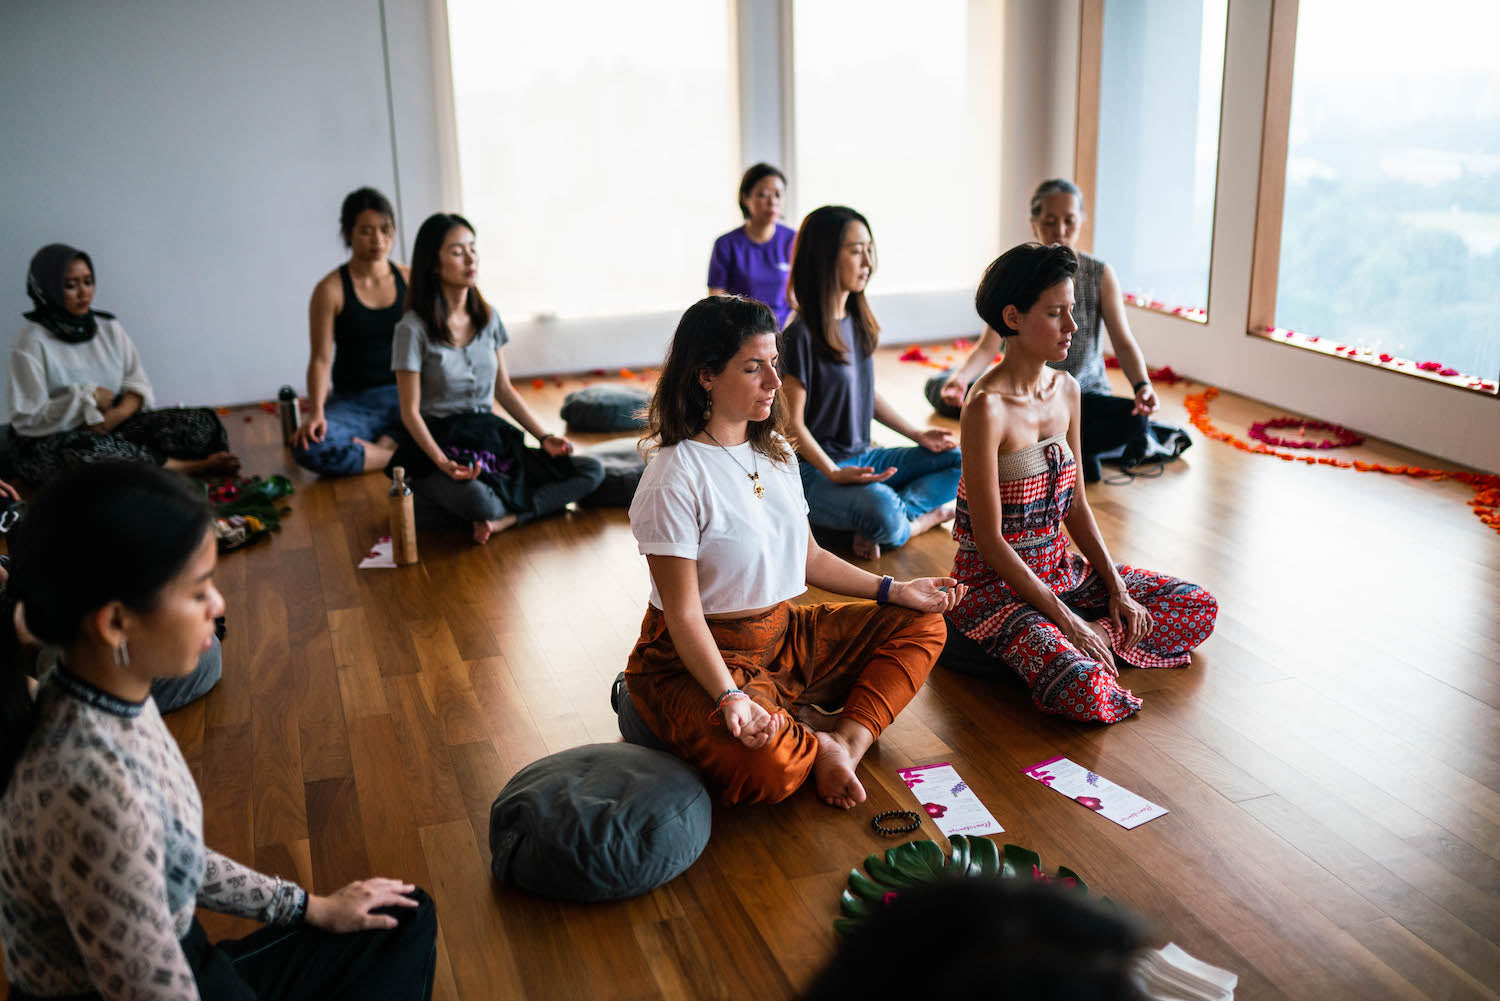 lotuswei Flowerlounge in Singapore flower essence teaching with meditation